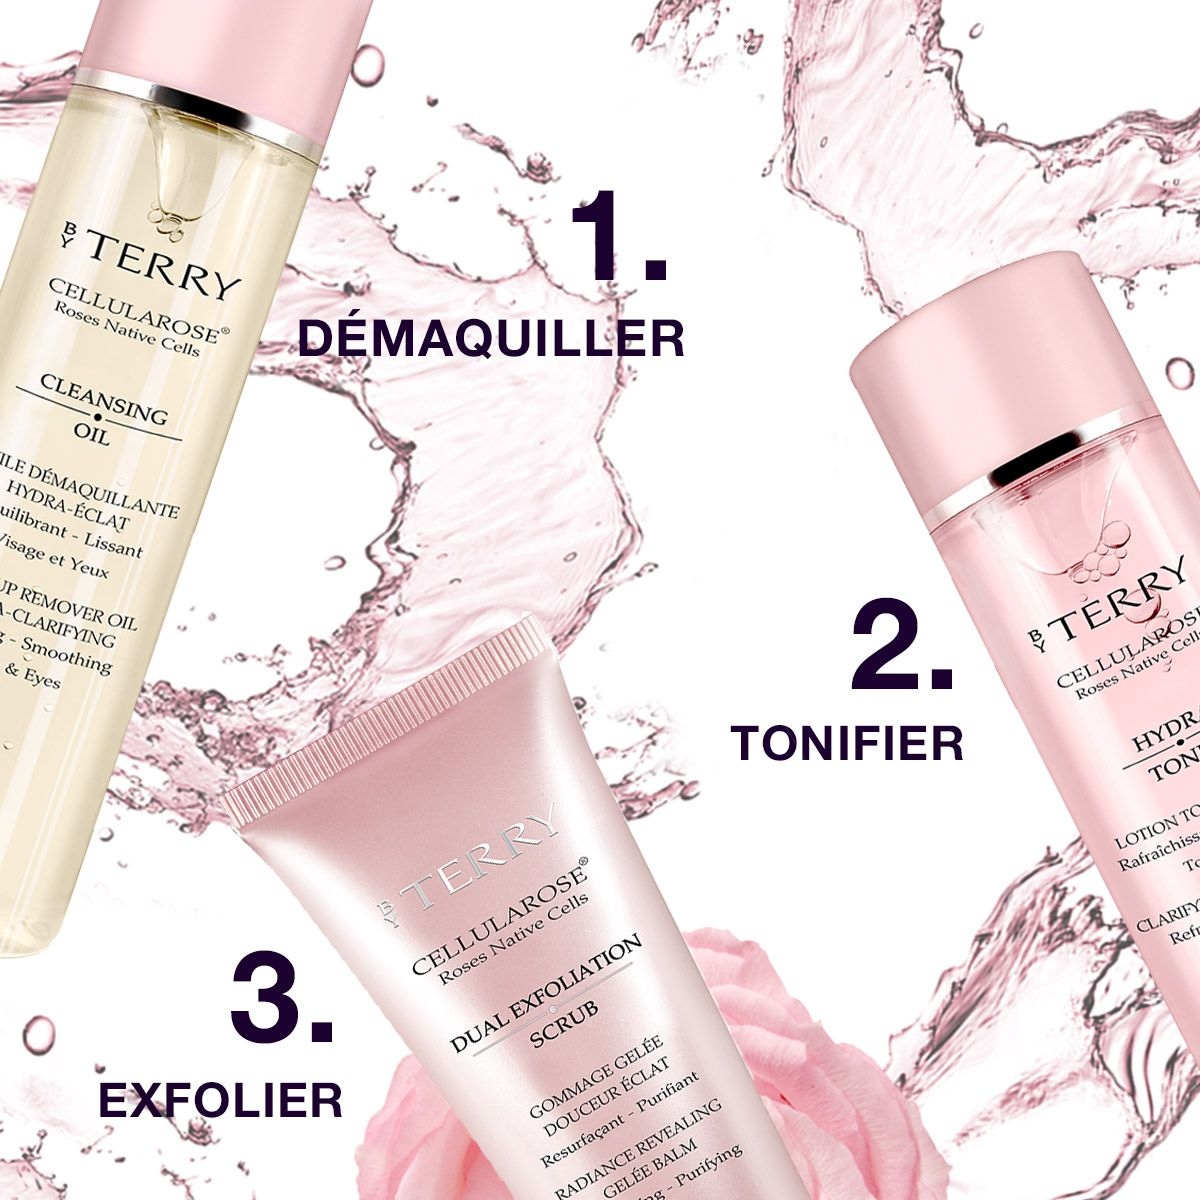 Pin by BY TERRY on PURETÉ The balm, Cleansing oil, Gelee